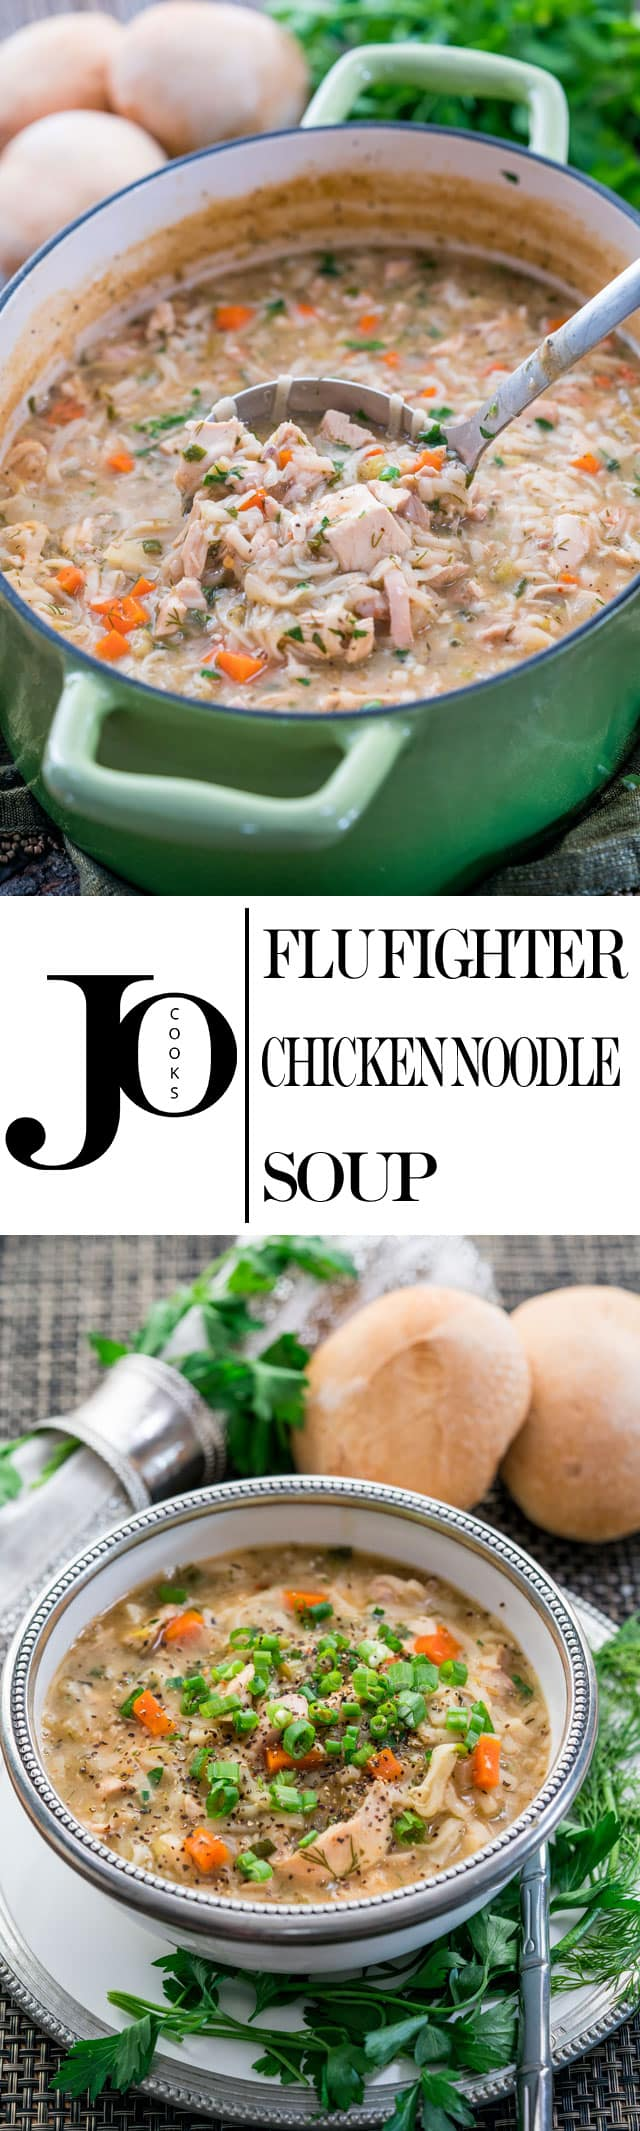 This Flu Fighter Chicken Noodle Soup is loaded with good for you ingredients, it's cozy and the epitome of comfort food. Perfect for when you're feeling congested or experiencing flu-like symptoms. www.jocooks.com #chickensoup